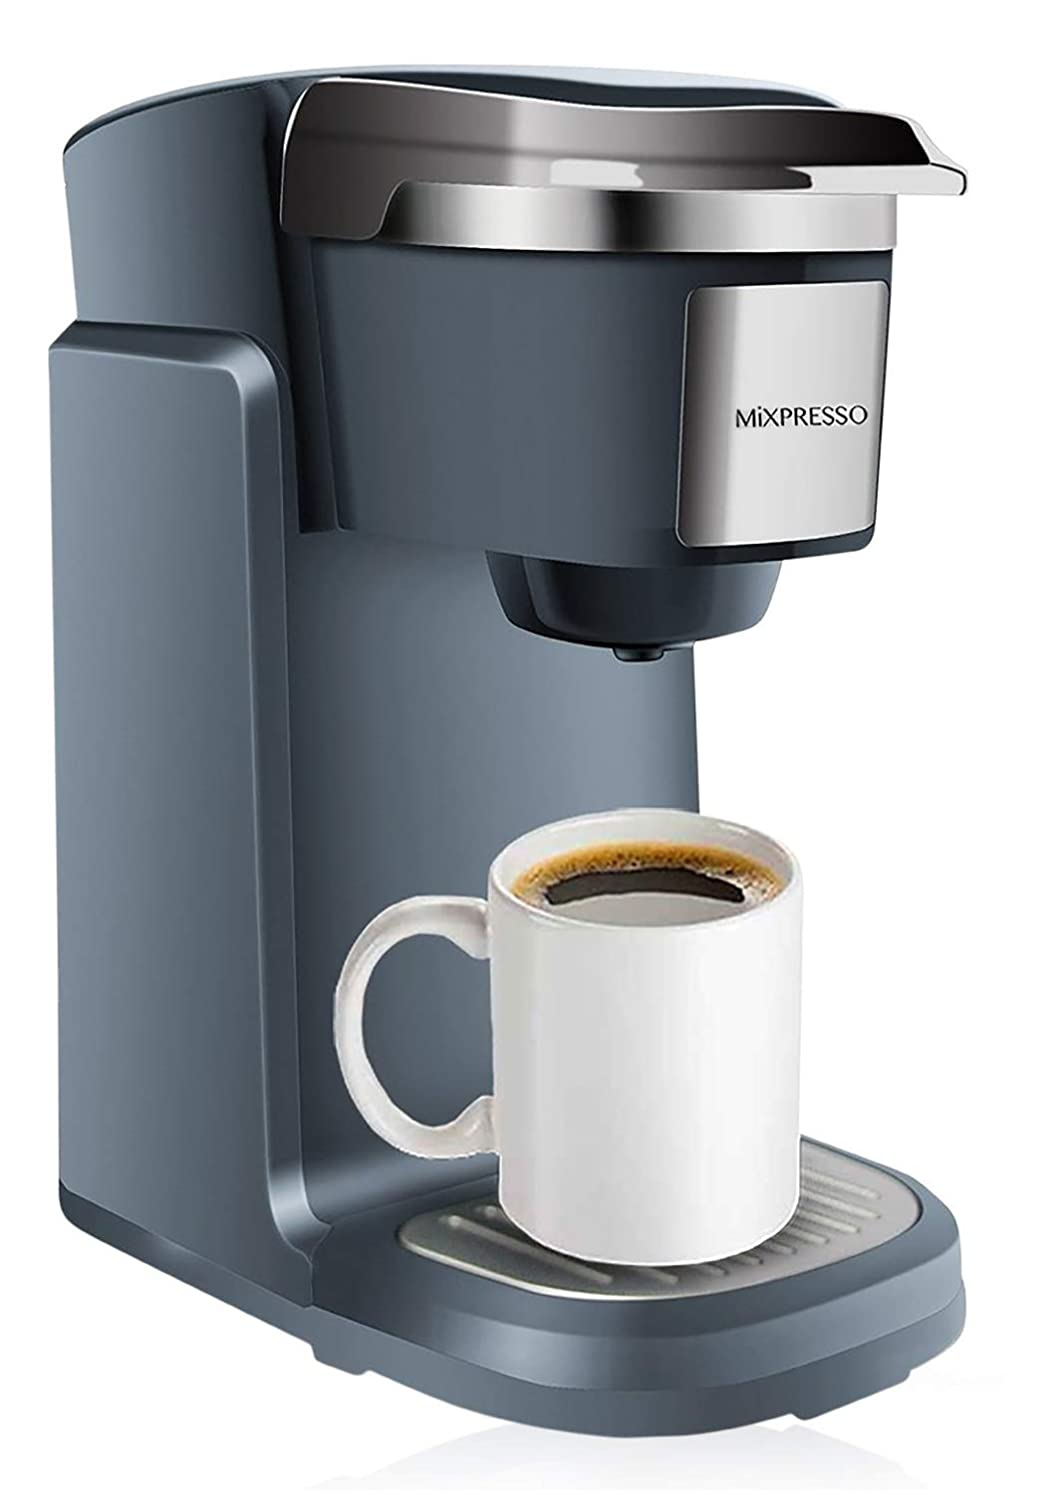 Mixpresso - Single Serve K-Cup Coffee Maker | Compatible With 1.0 & 2.0 K-Cup Pods | Removable 45oz Water Tank | Quick Brewing with Auto Shut-Off | One Touch Function (Dark/Grey)